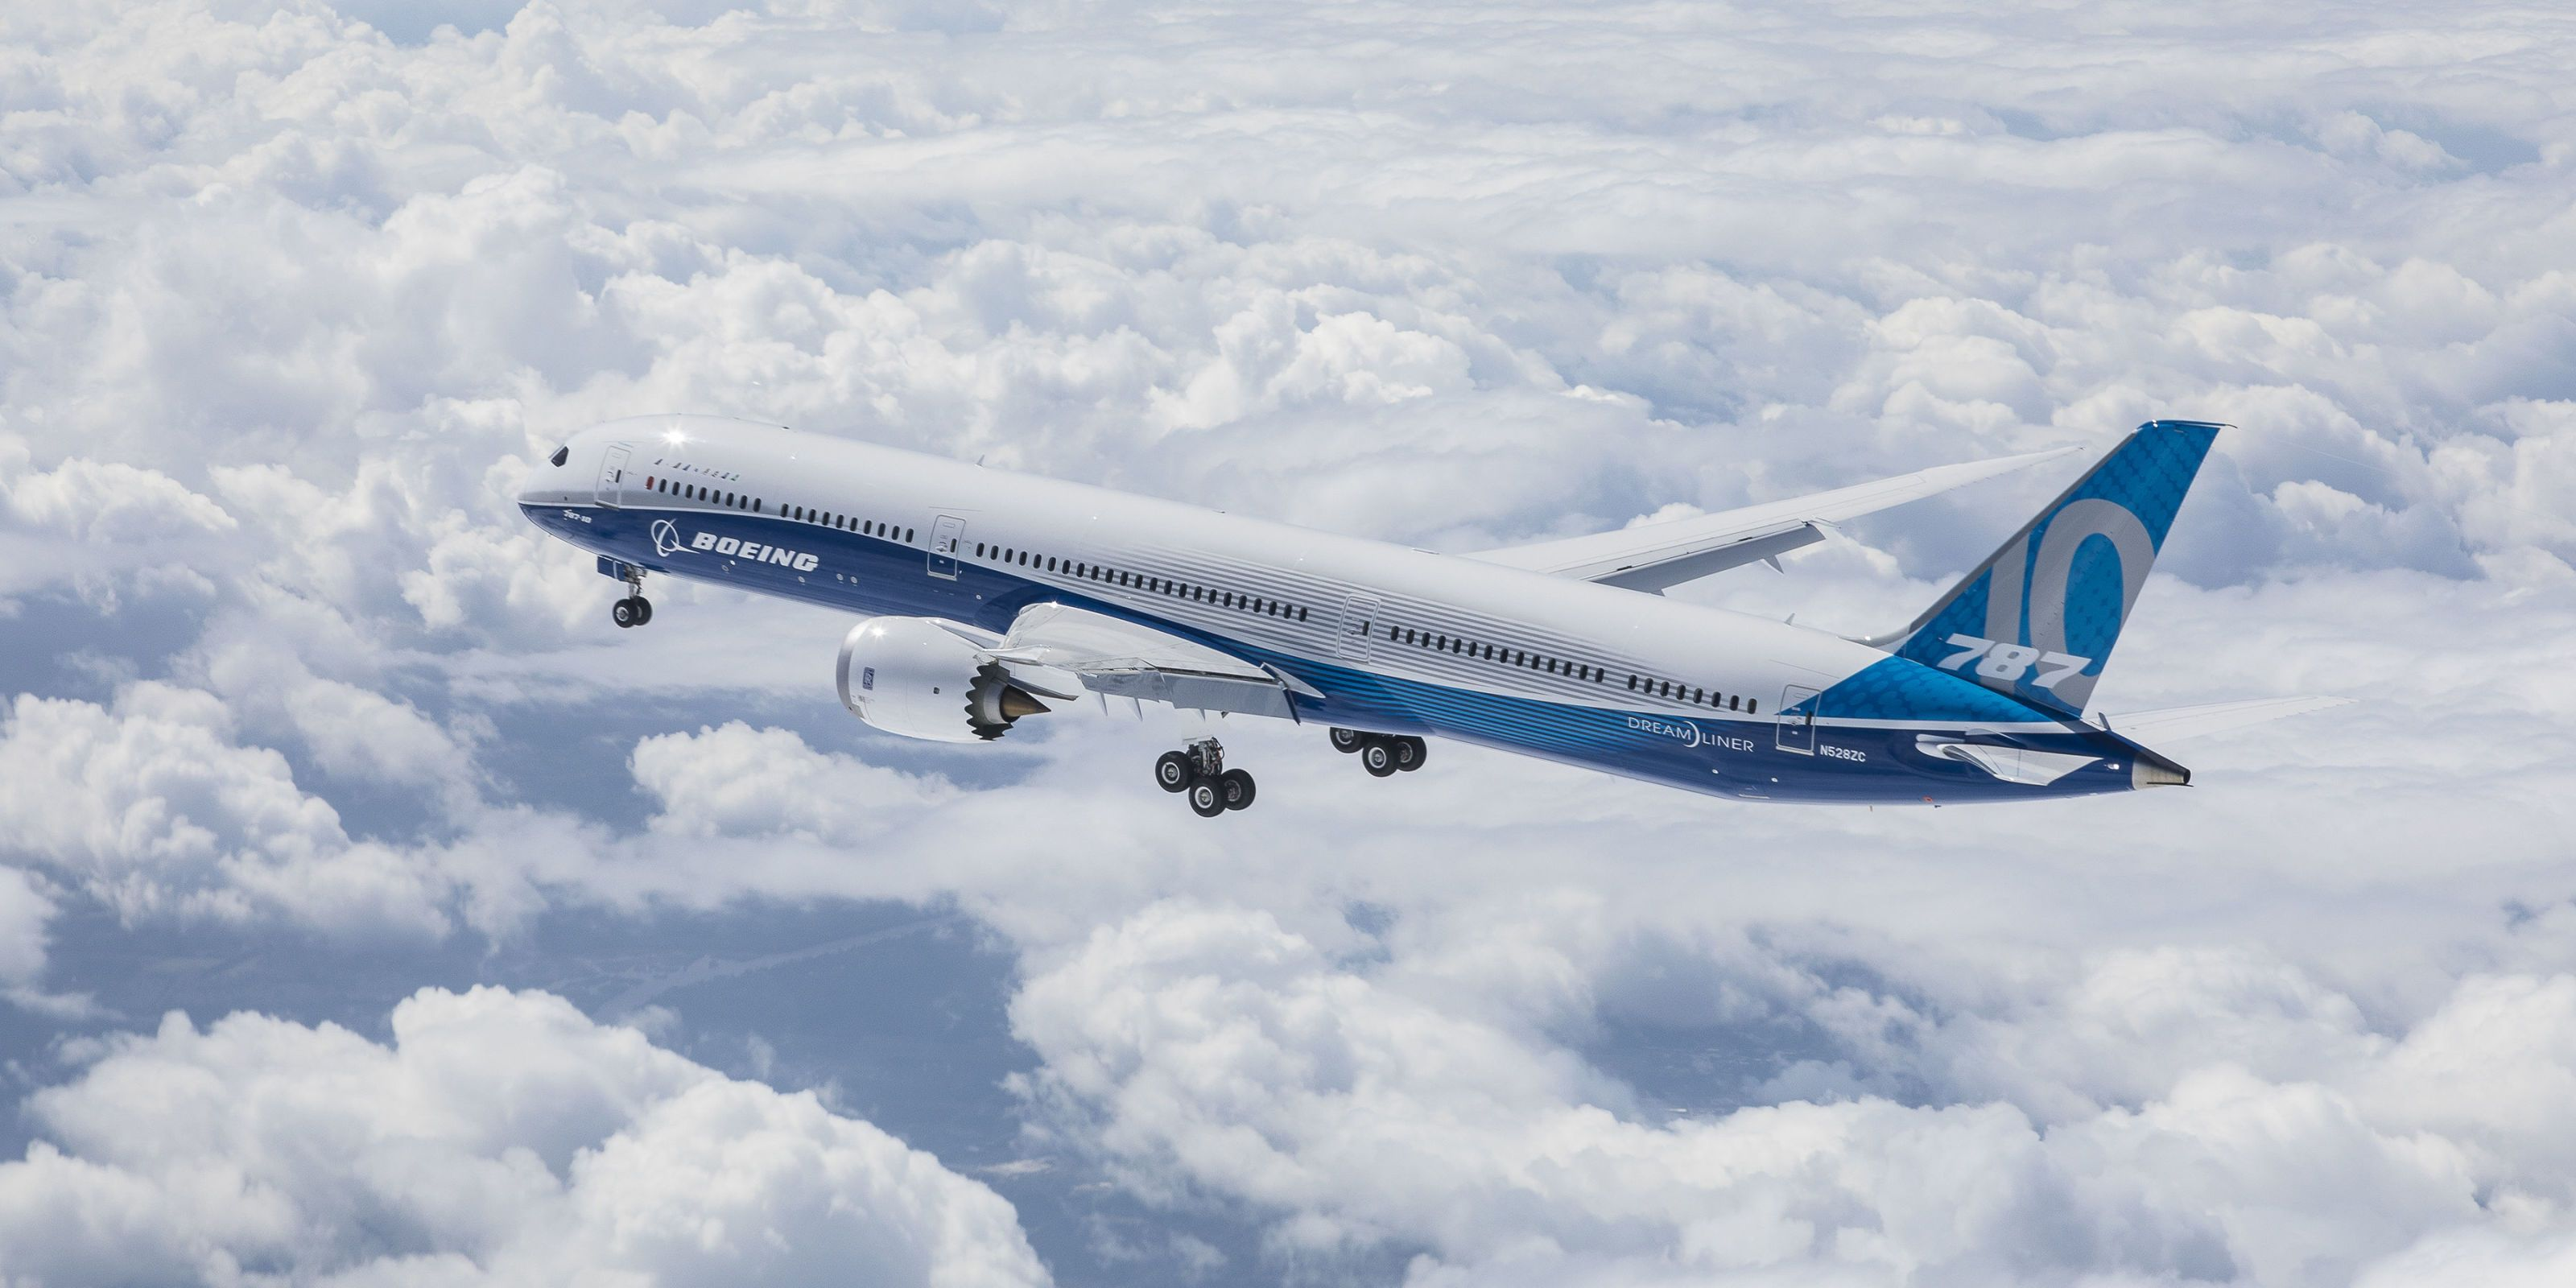 Boeing and Airbus Debut New Airliners With First Flights on the Same Day